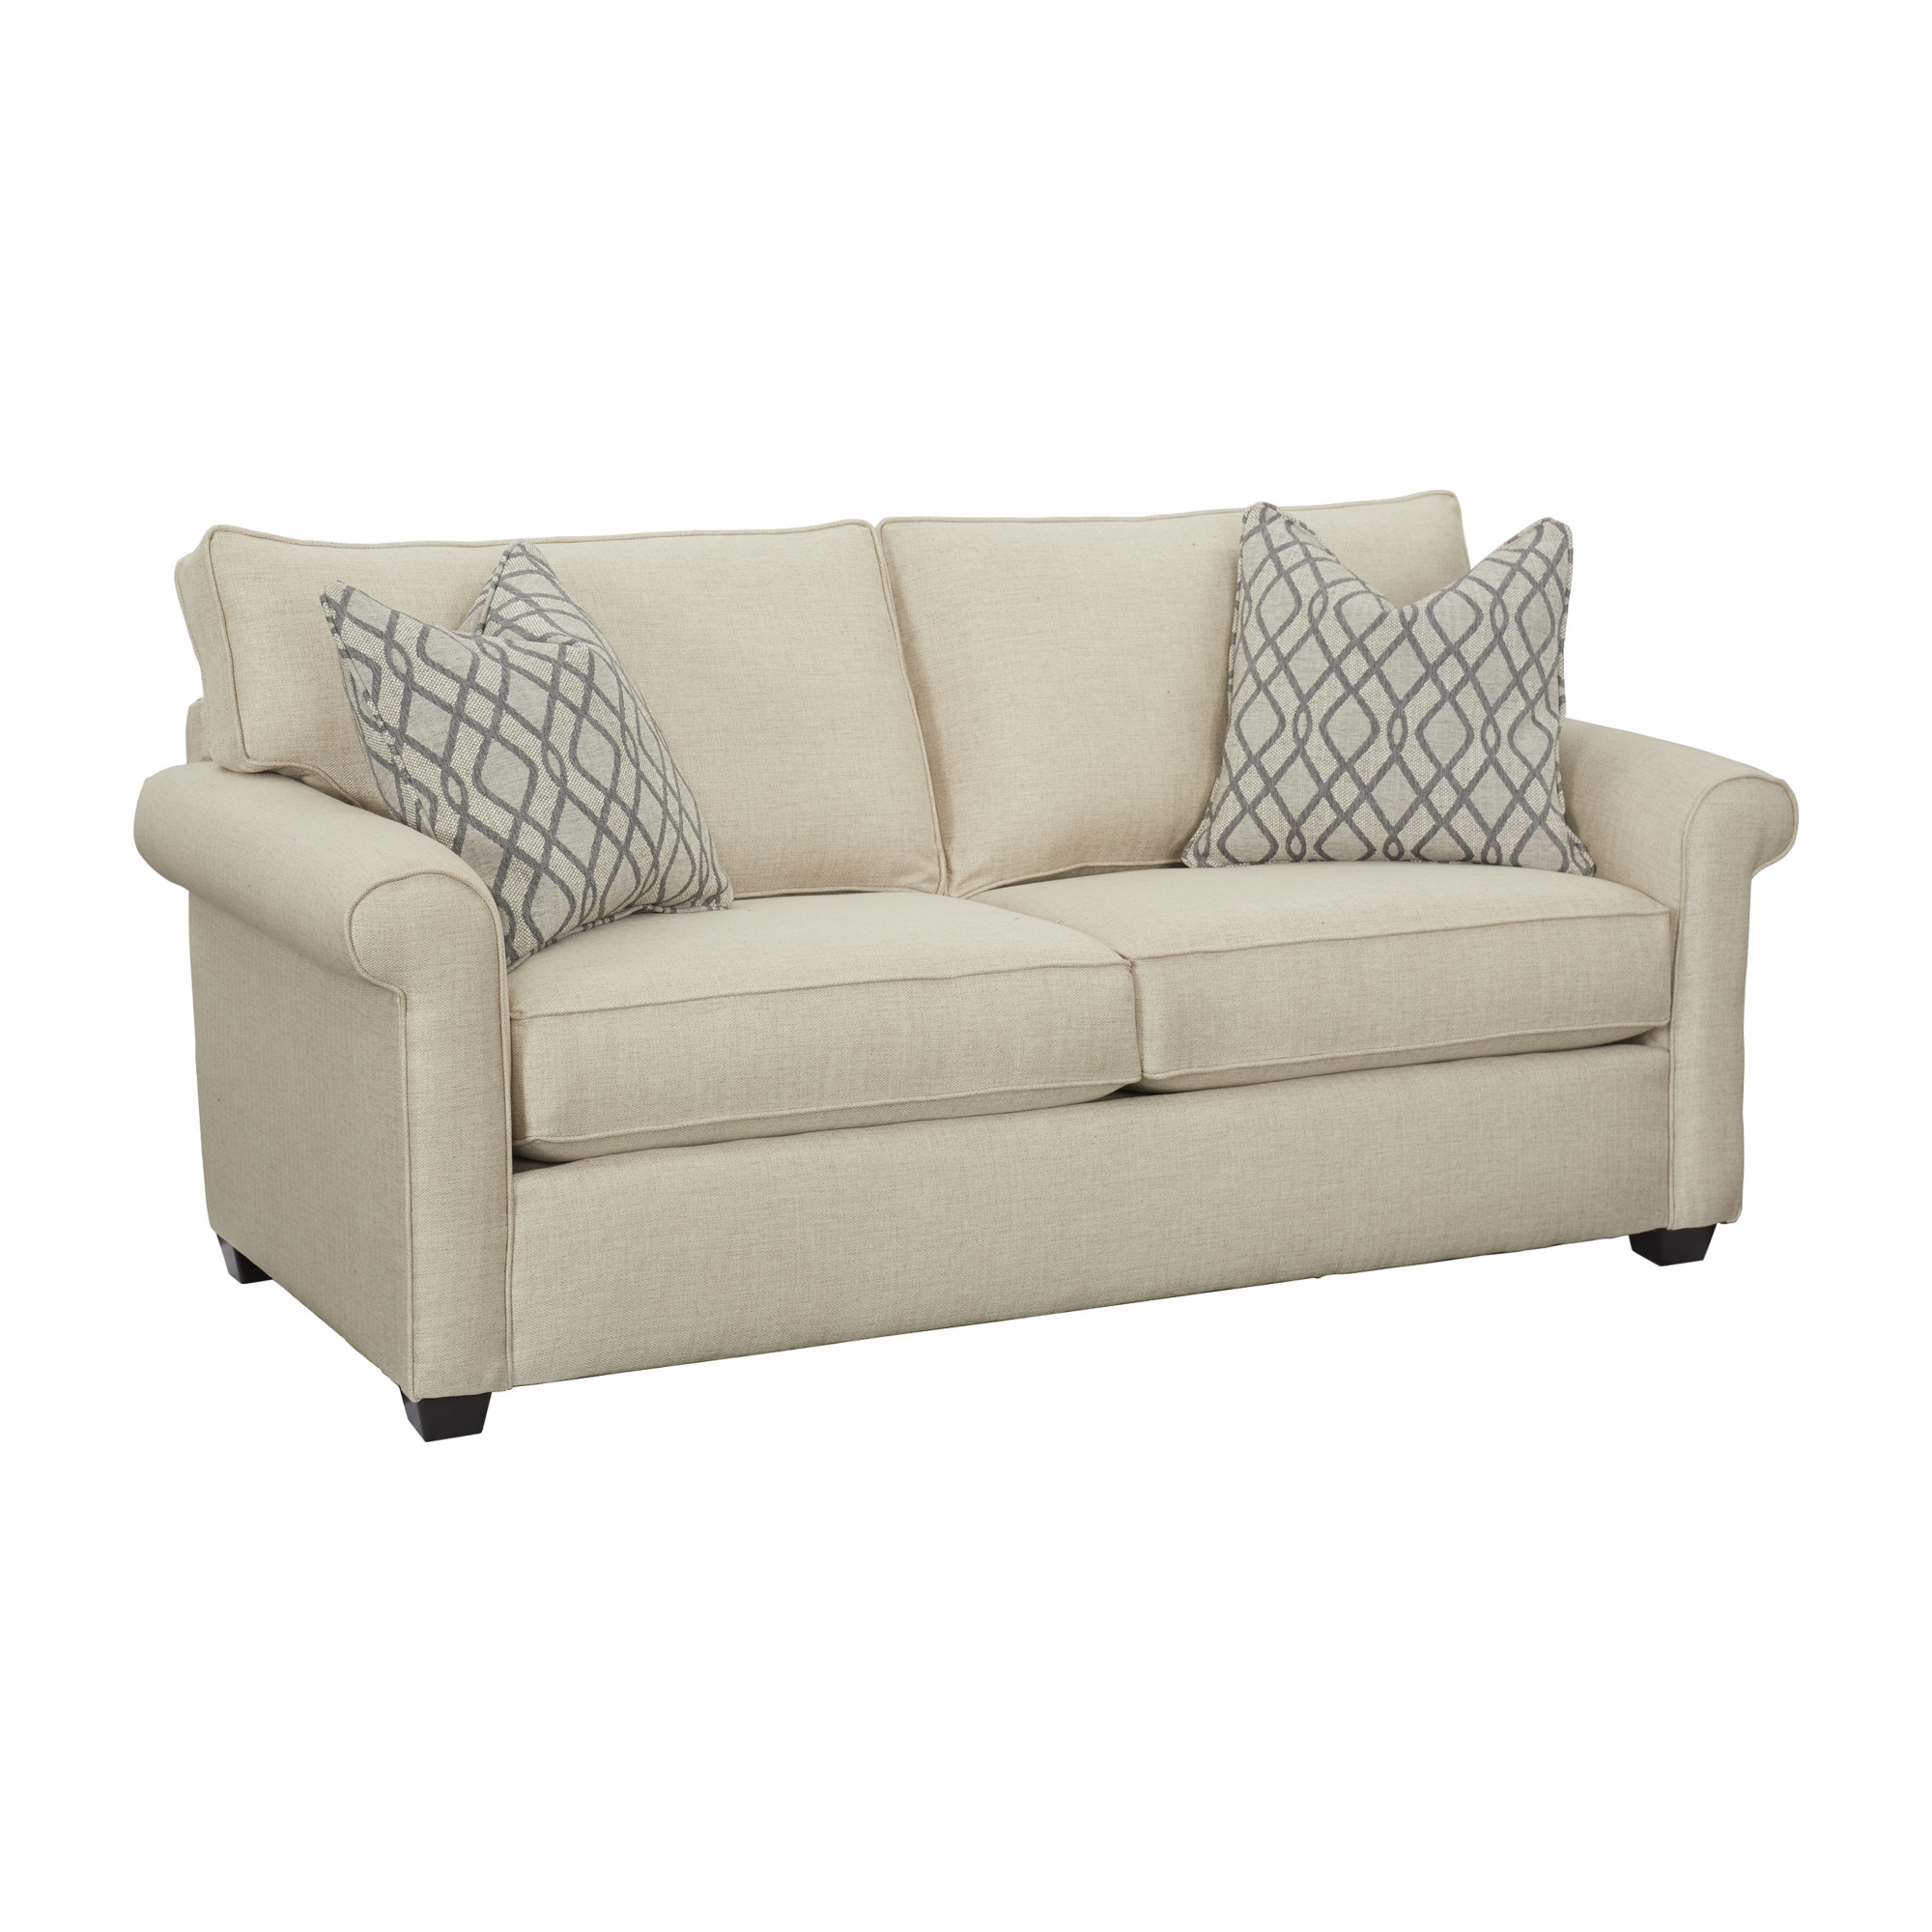 Swell Allison Sofa Andrewgaddart Wooden Chair Designs For Living Room Andrewgaddartcom